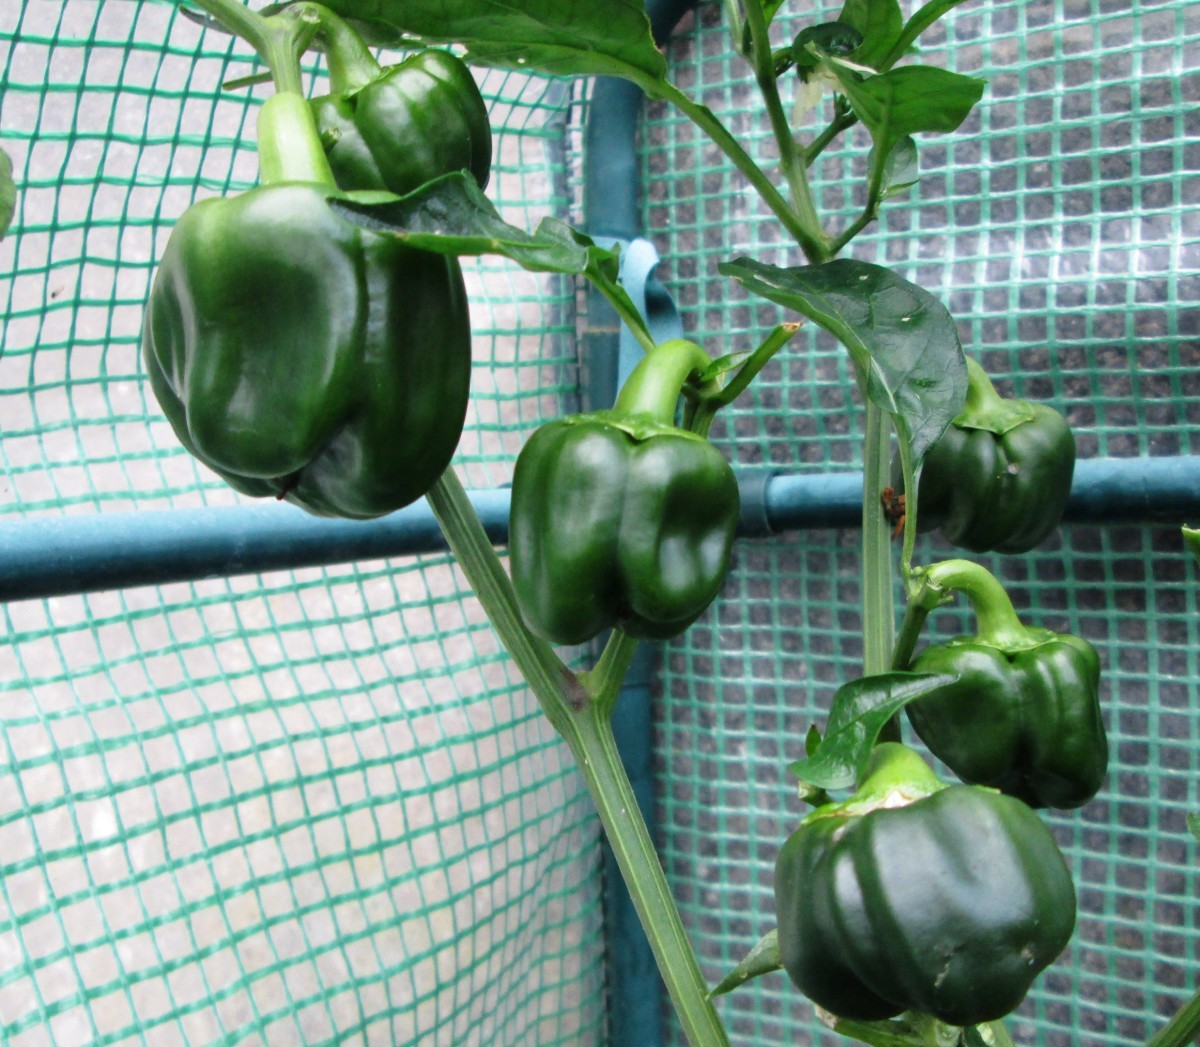 Growing planting and harvesting sweet bell peppers dengarden - Growing vegetables in a small space concept ...